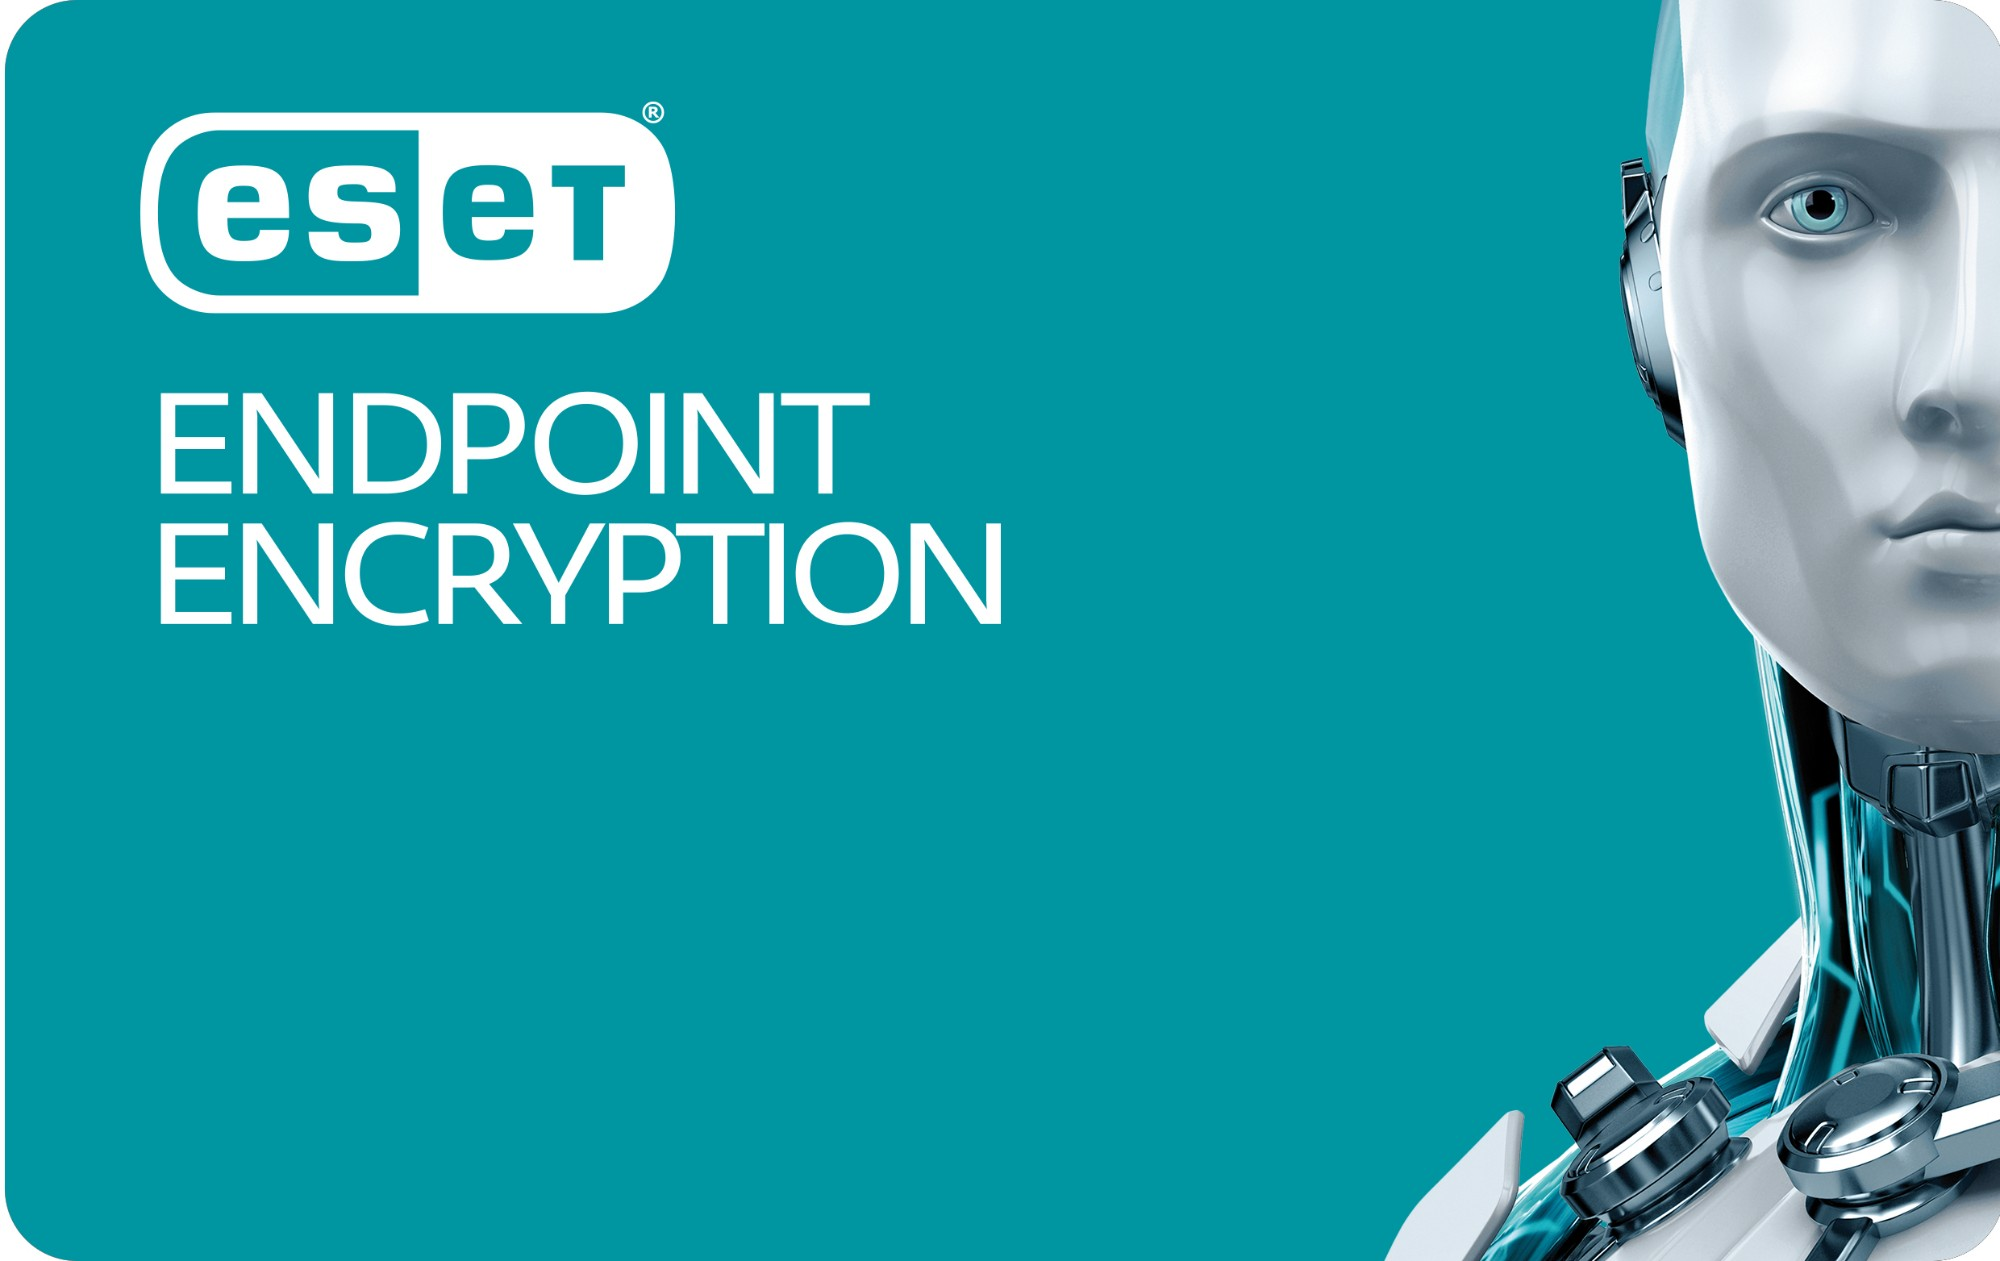 ESET Endpoint Encryption Pro 50 - 99 User Education (EDU) license 50 - 99 license(s) 1 year(s)